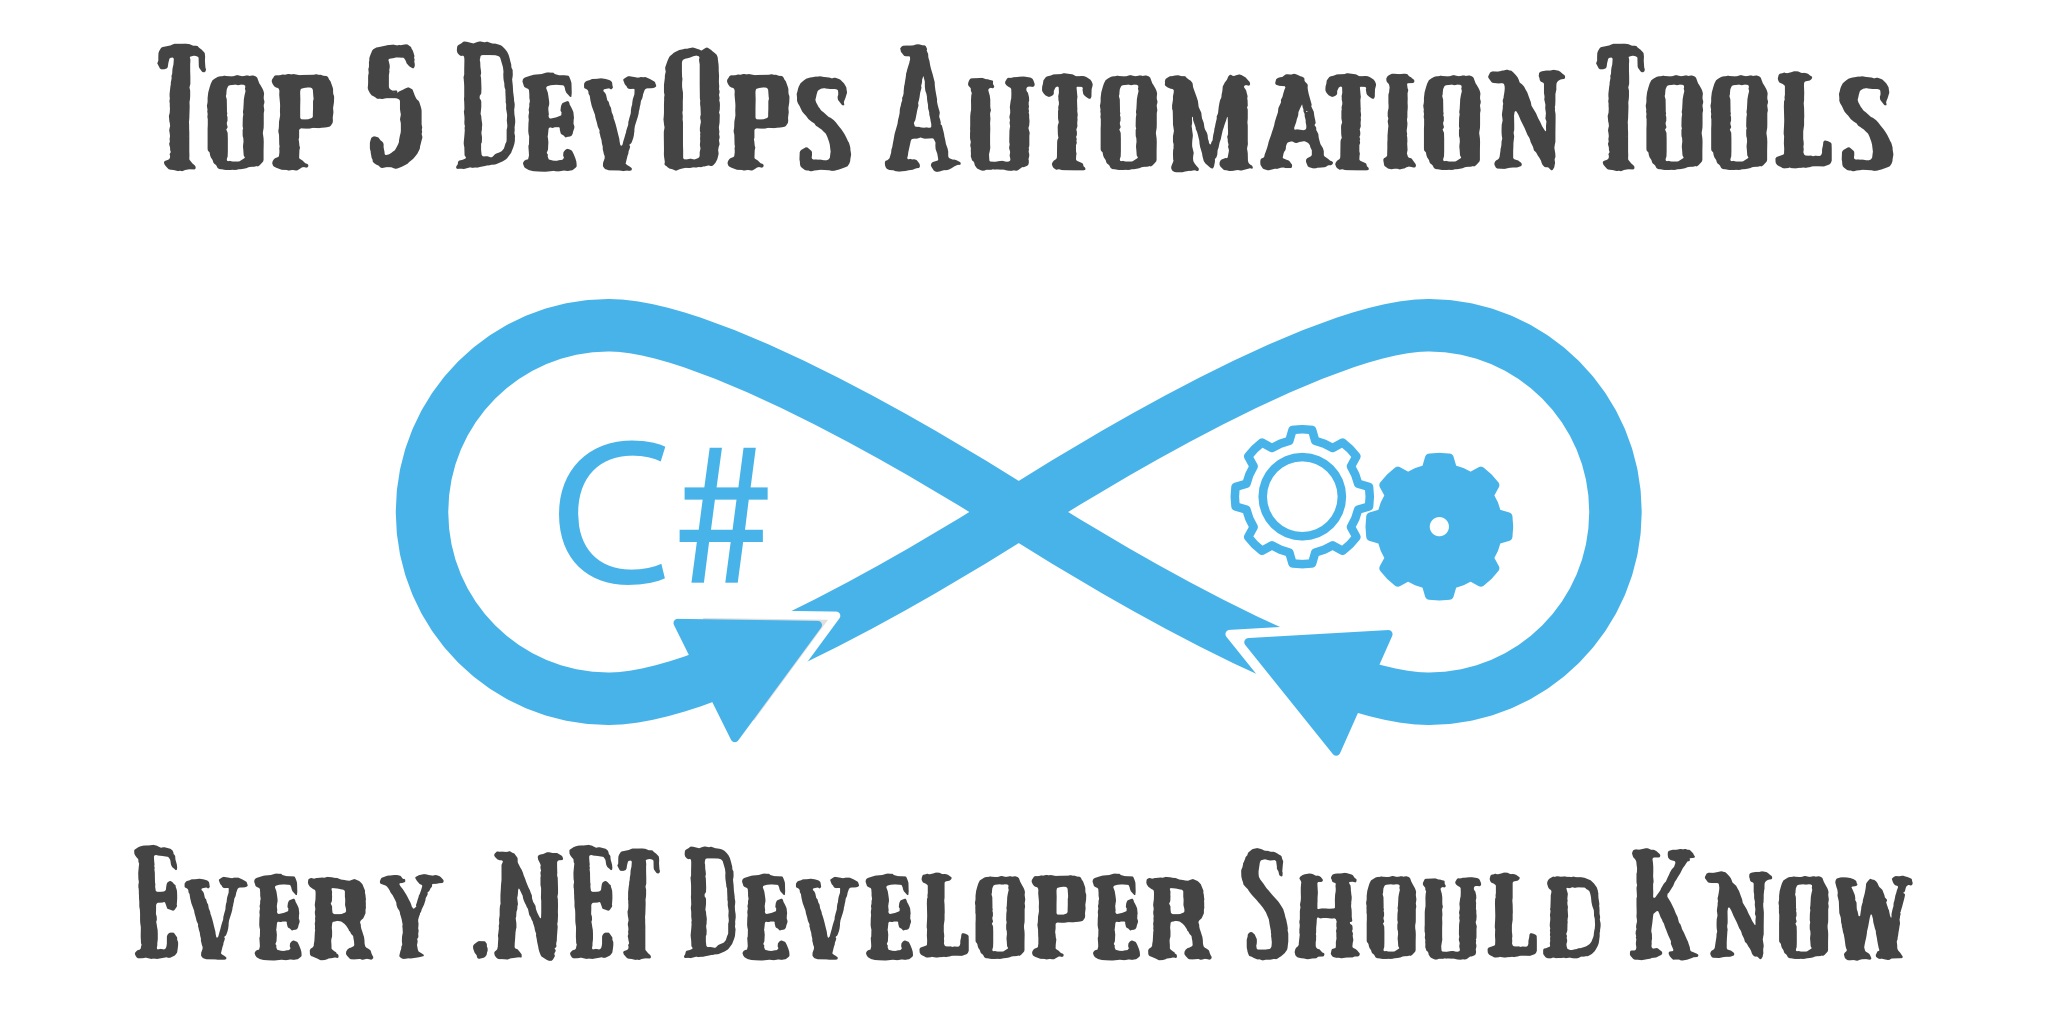 Top 5 DevOps Automation Tools for C#